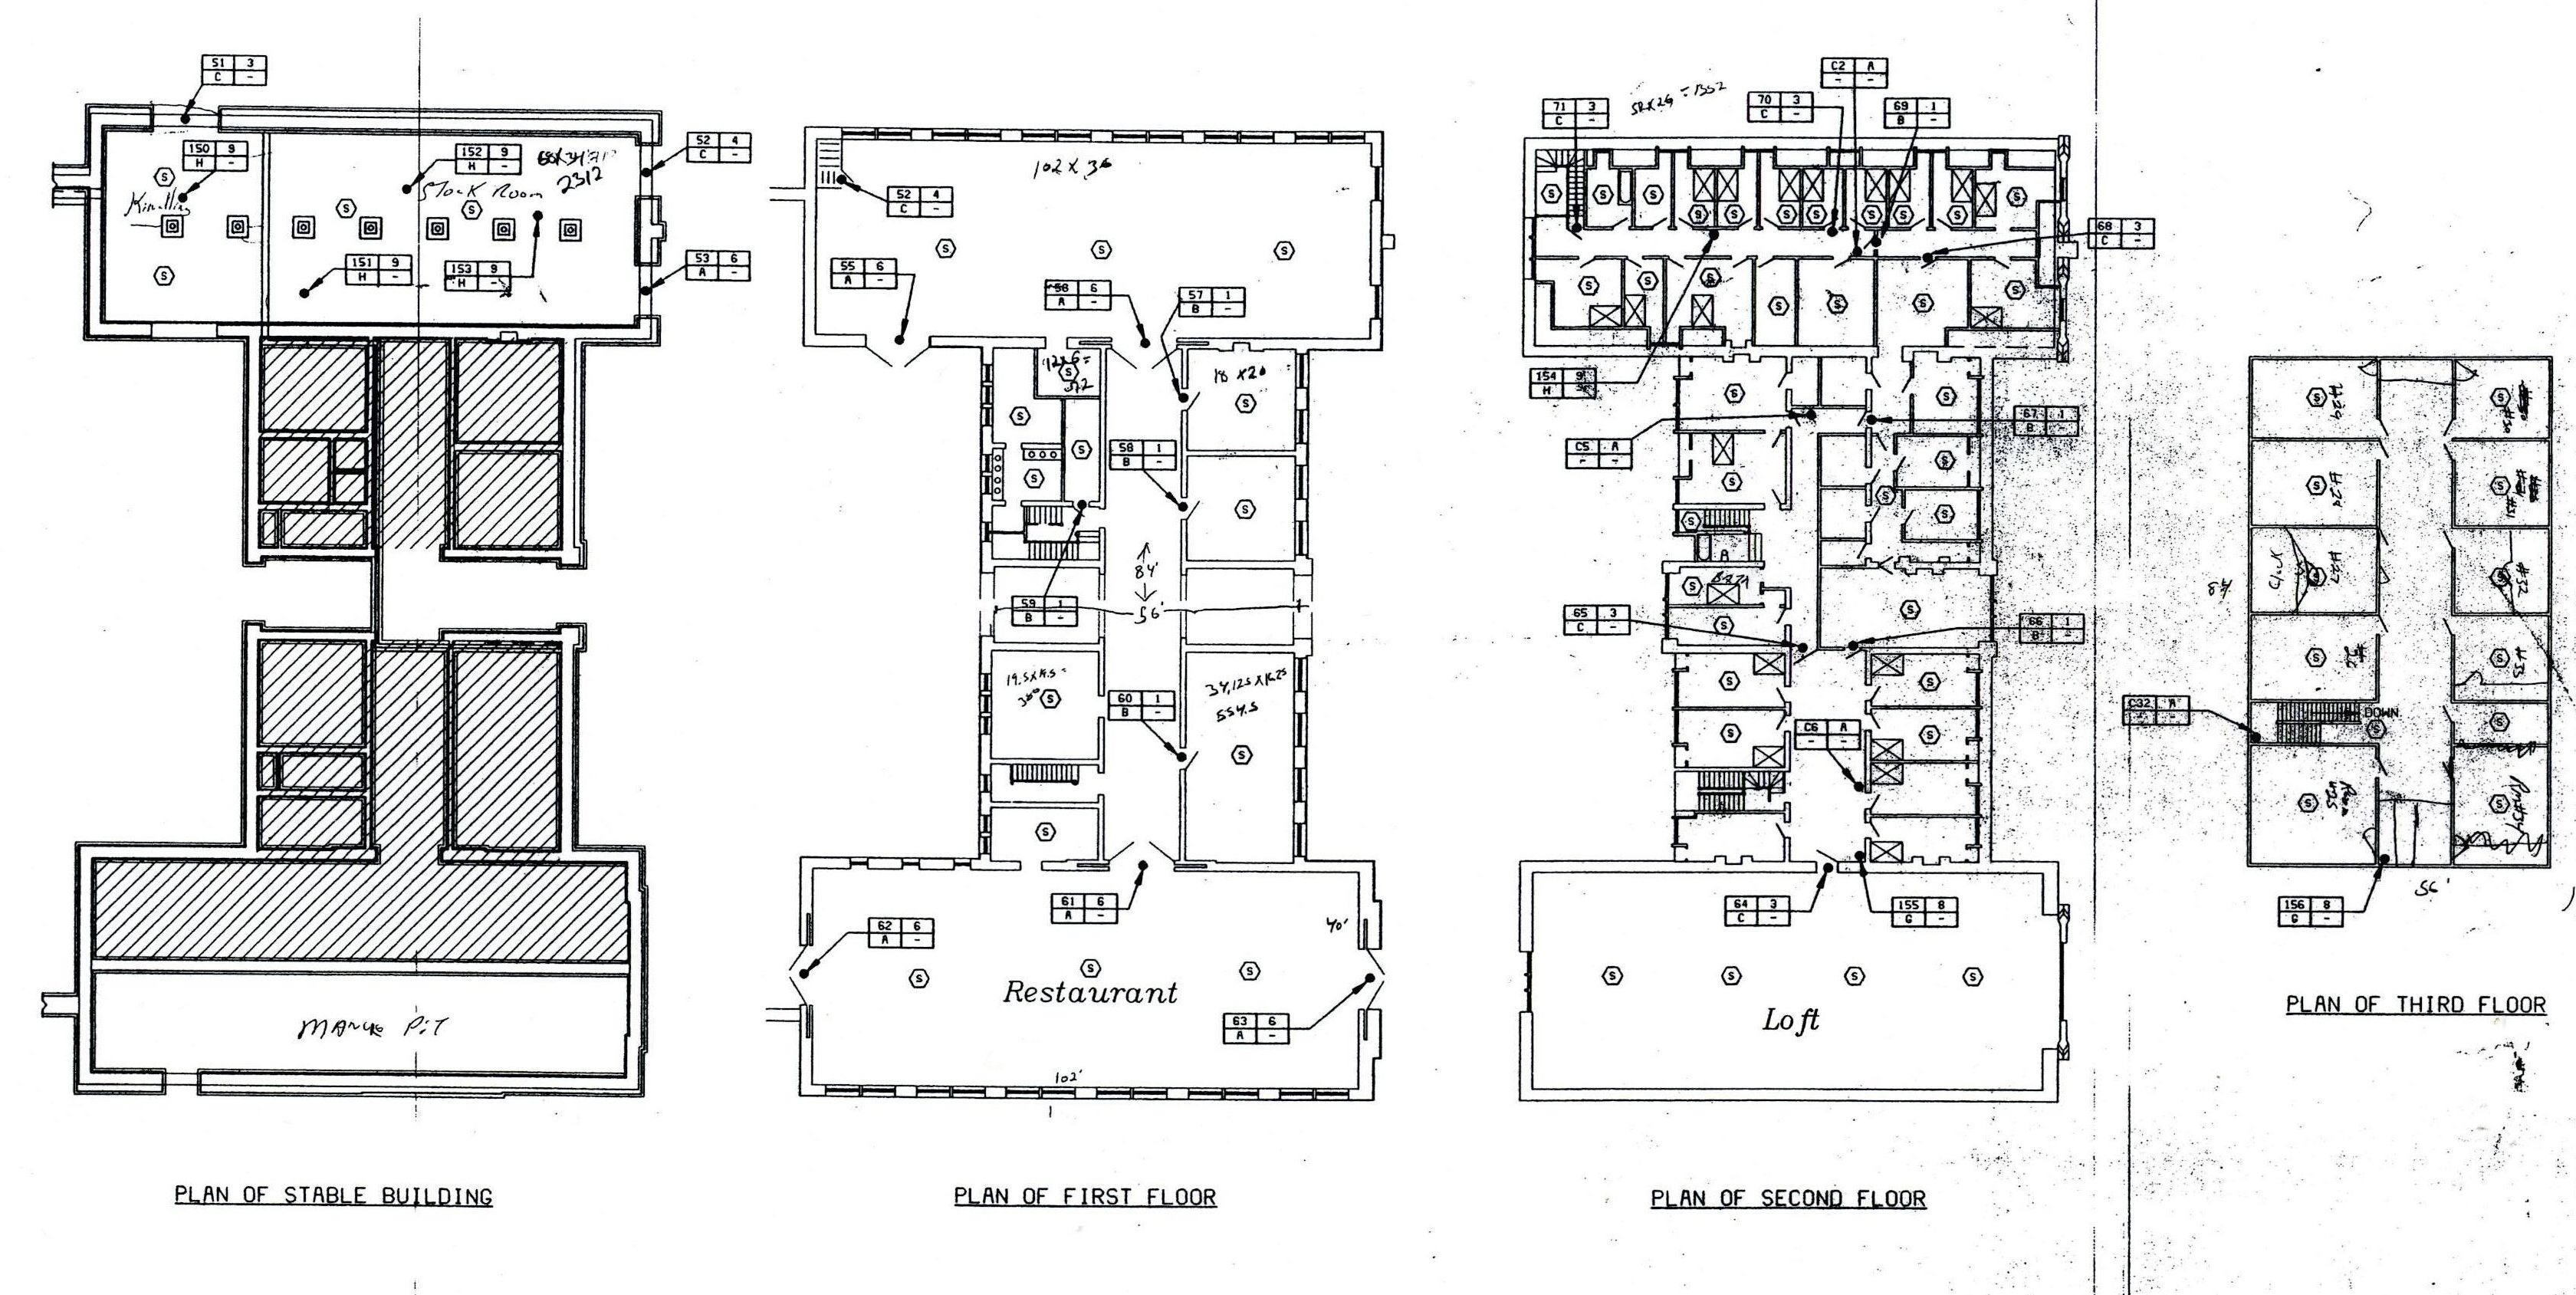 Biltmore Le Floor Plan With Lights Labeled